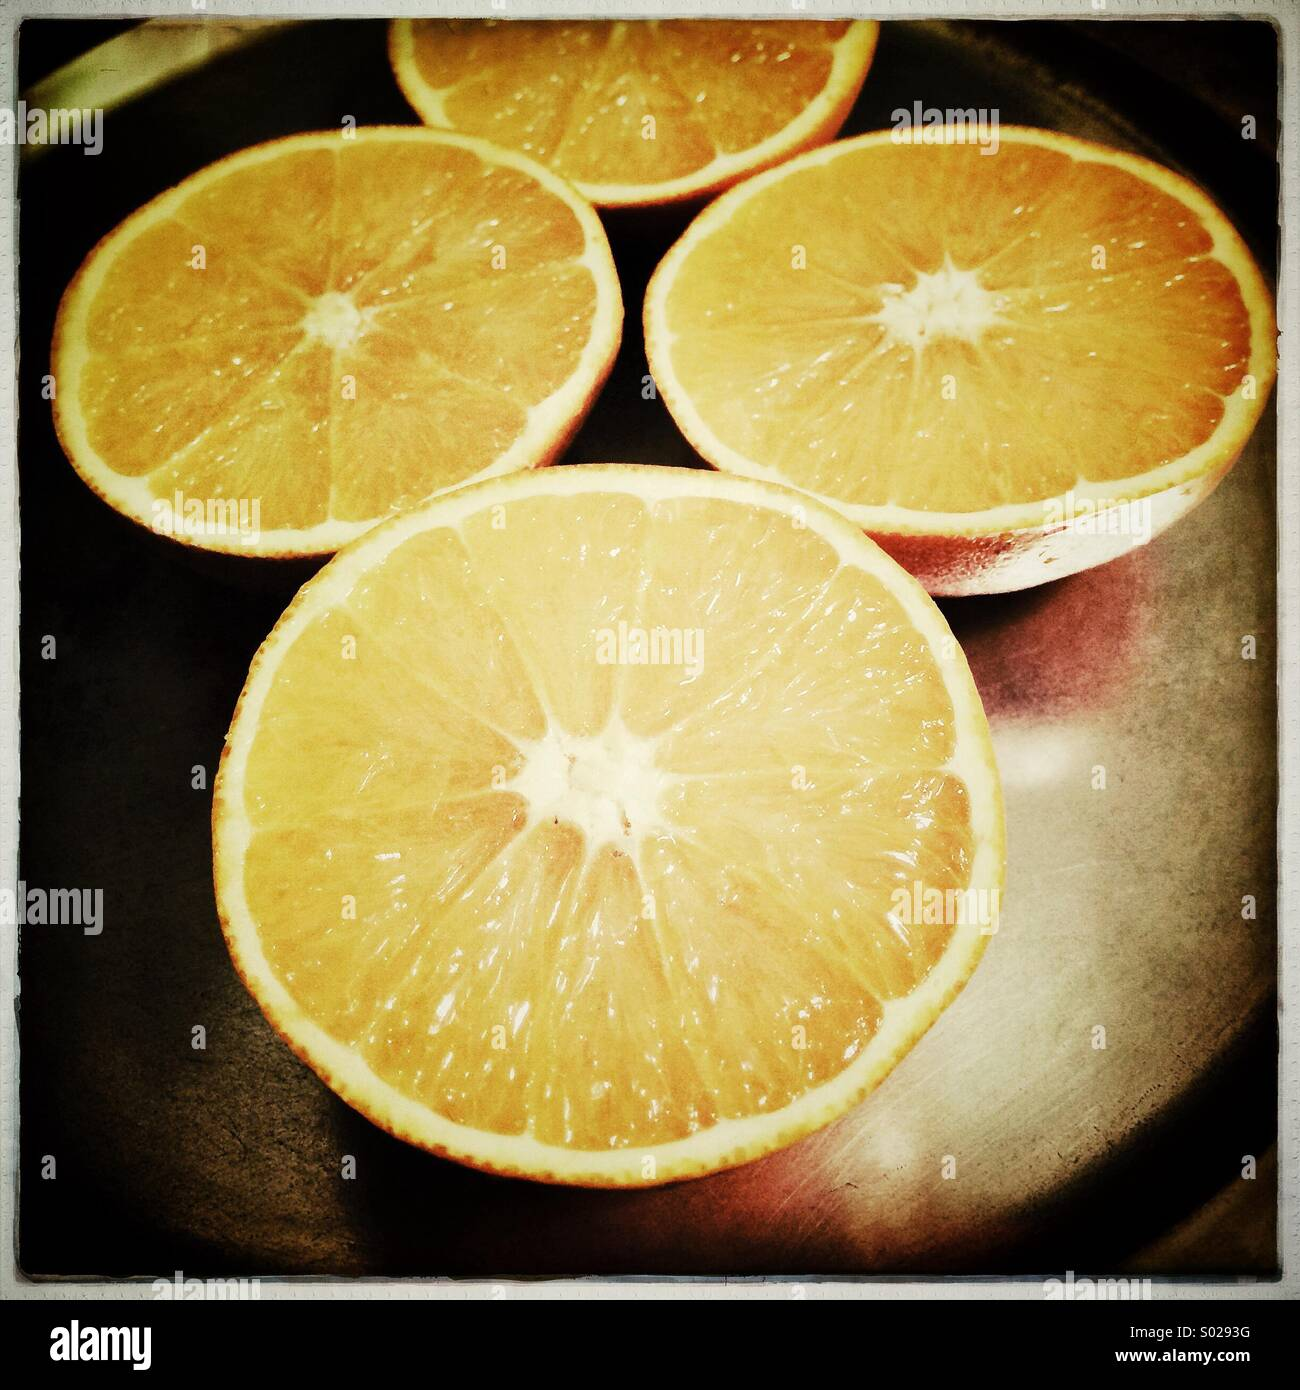 Oranges - Stock Image